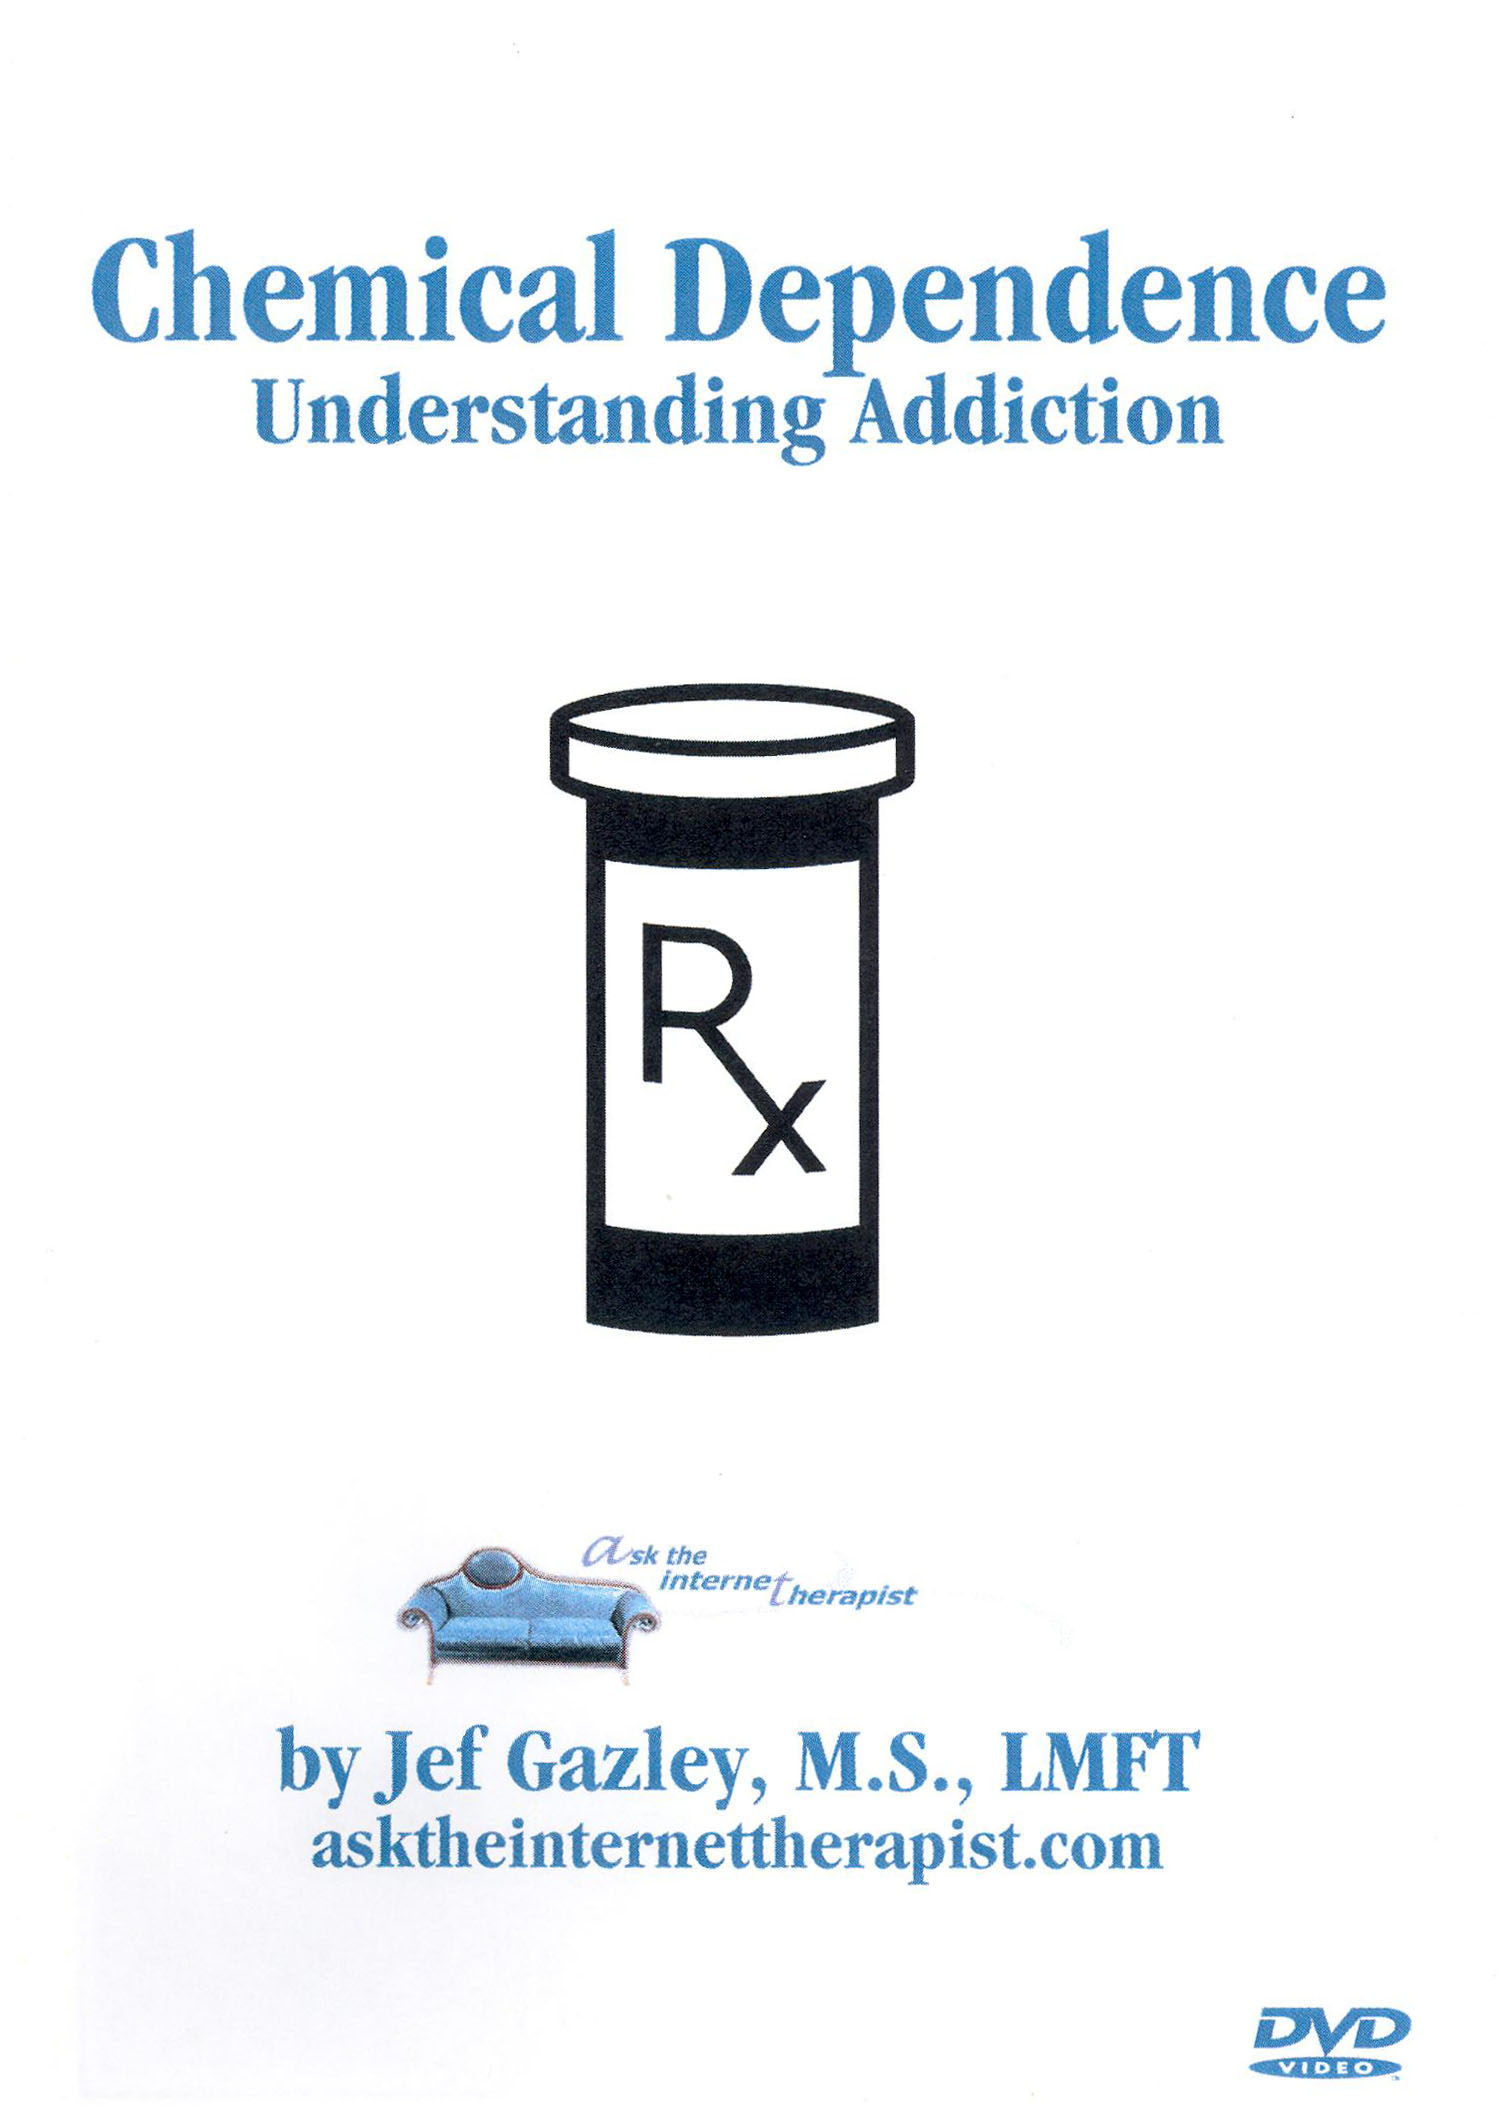 Chemical Dependence: Understanding Addiction